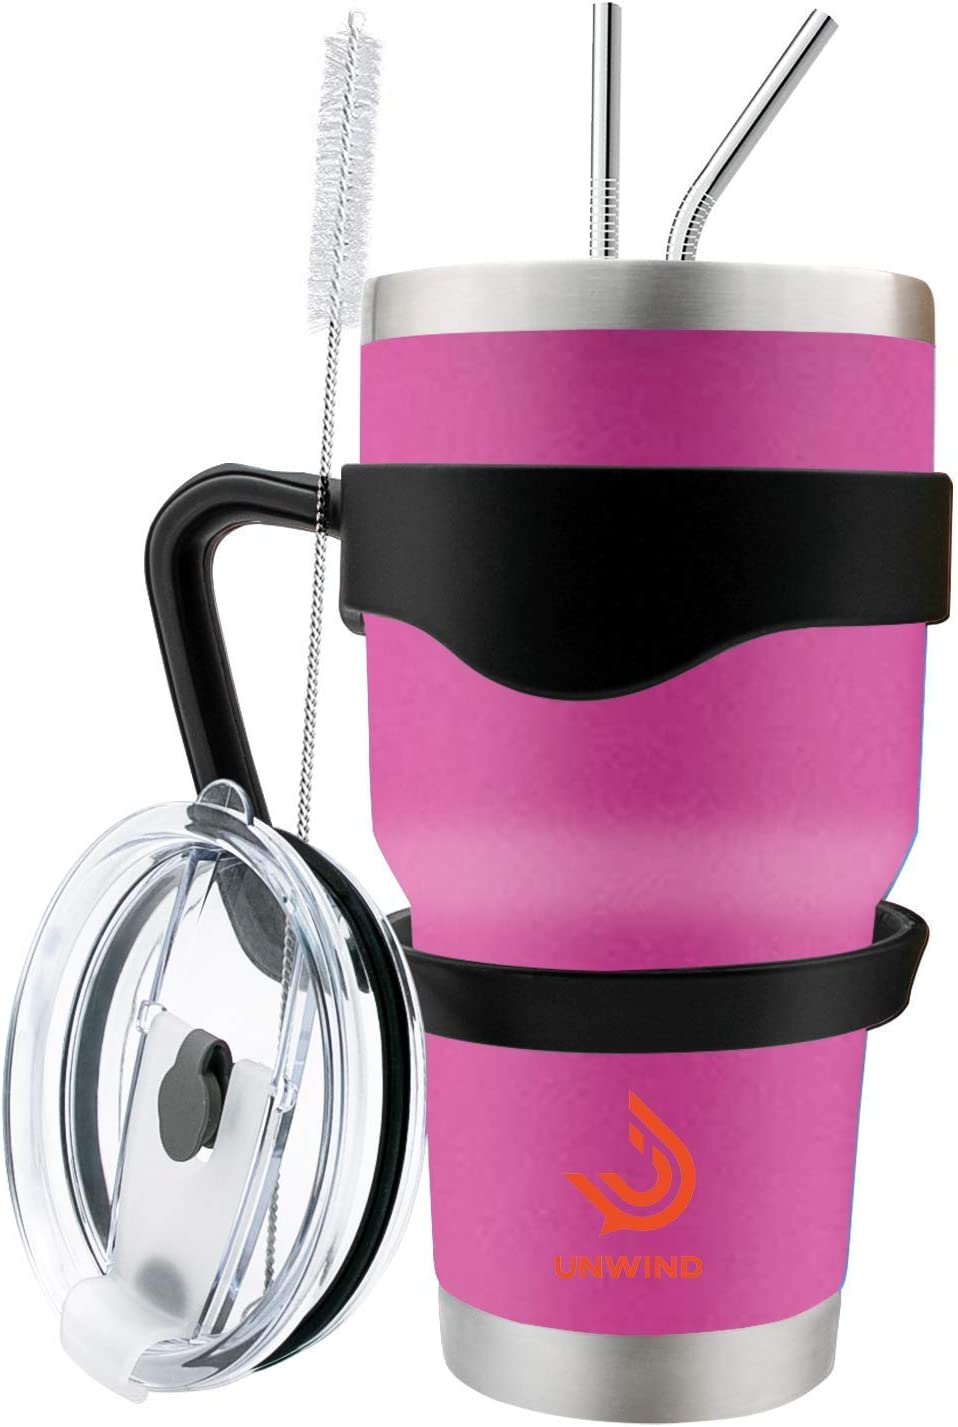 Unwind 30 oz Stainless Steel Tumbler Vacuum Insulated Coffee Cup Large Travel Mug Works Great for Ice Drinks and Hot Beverage - Pink